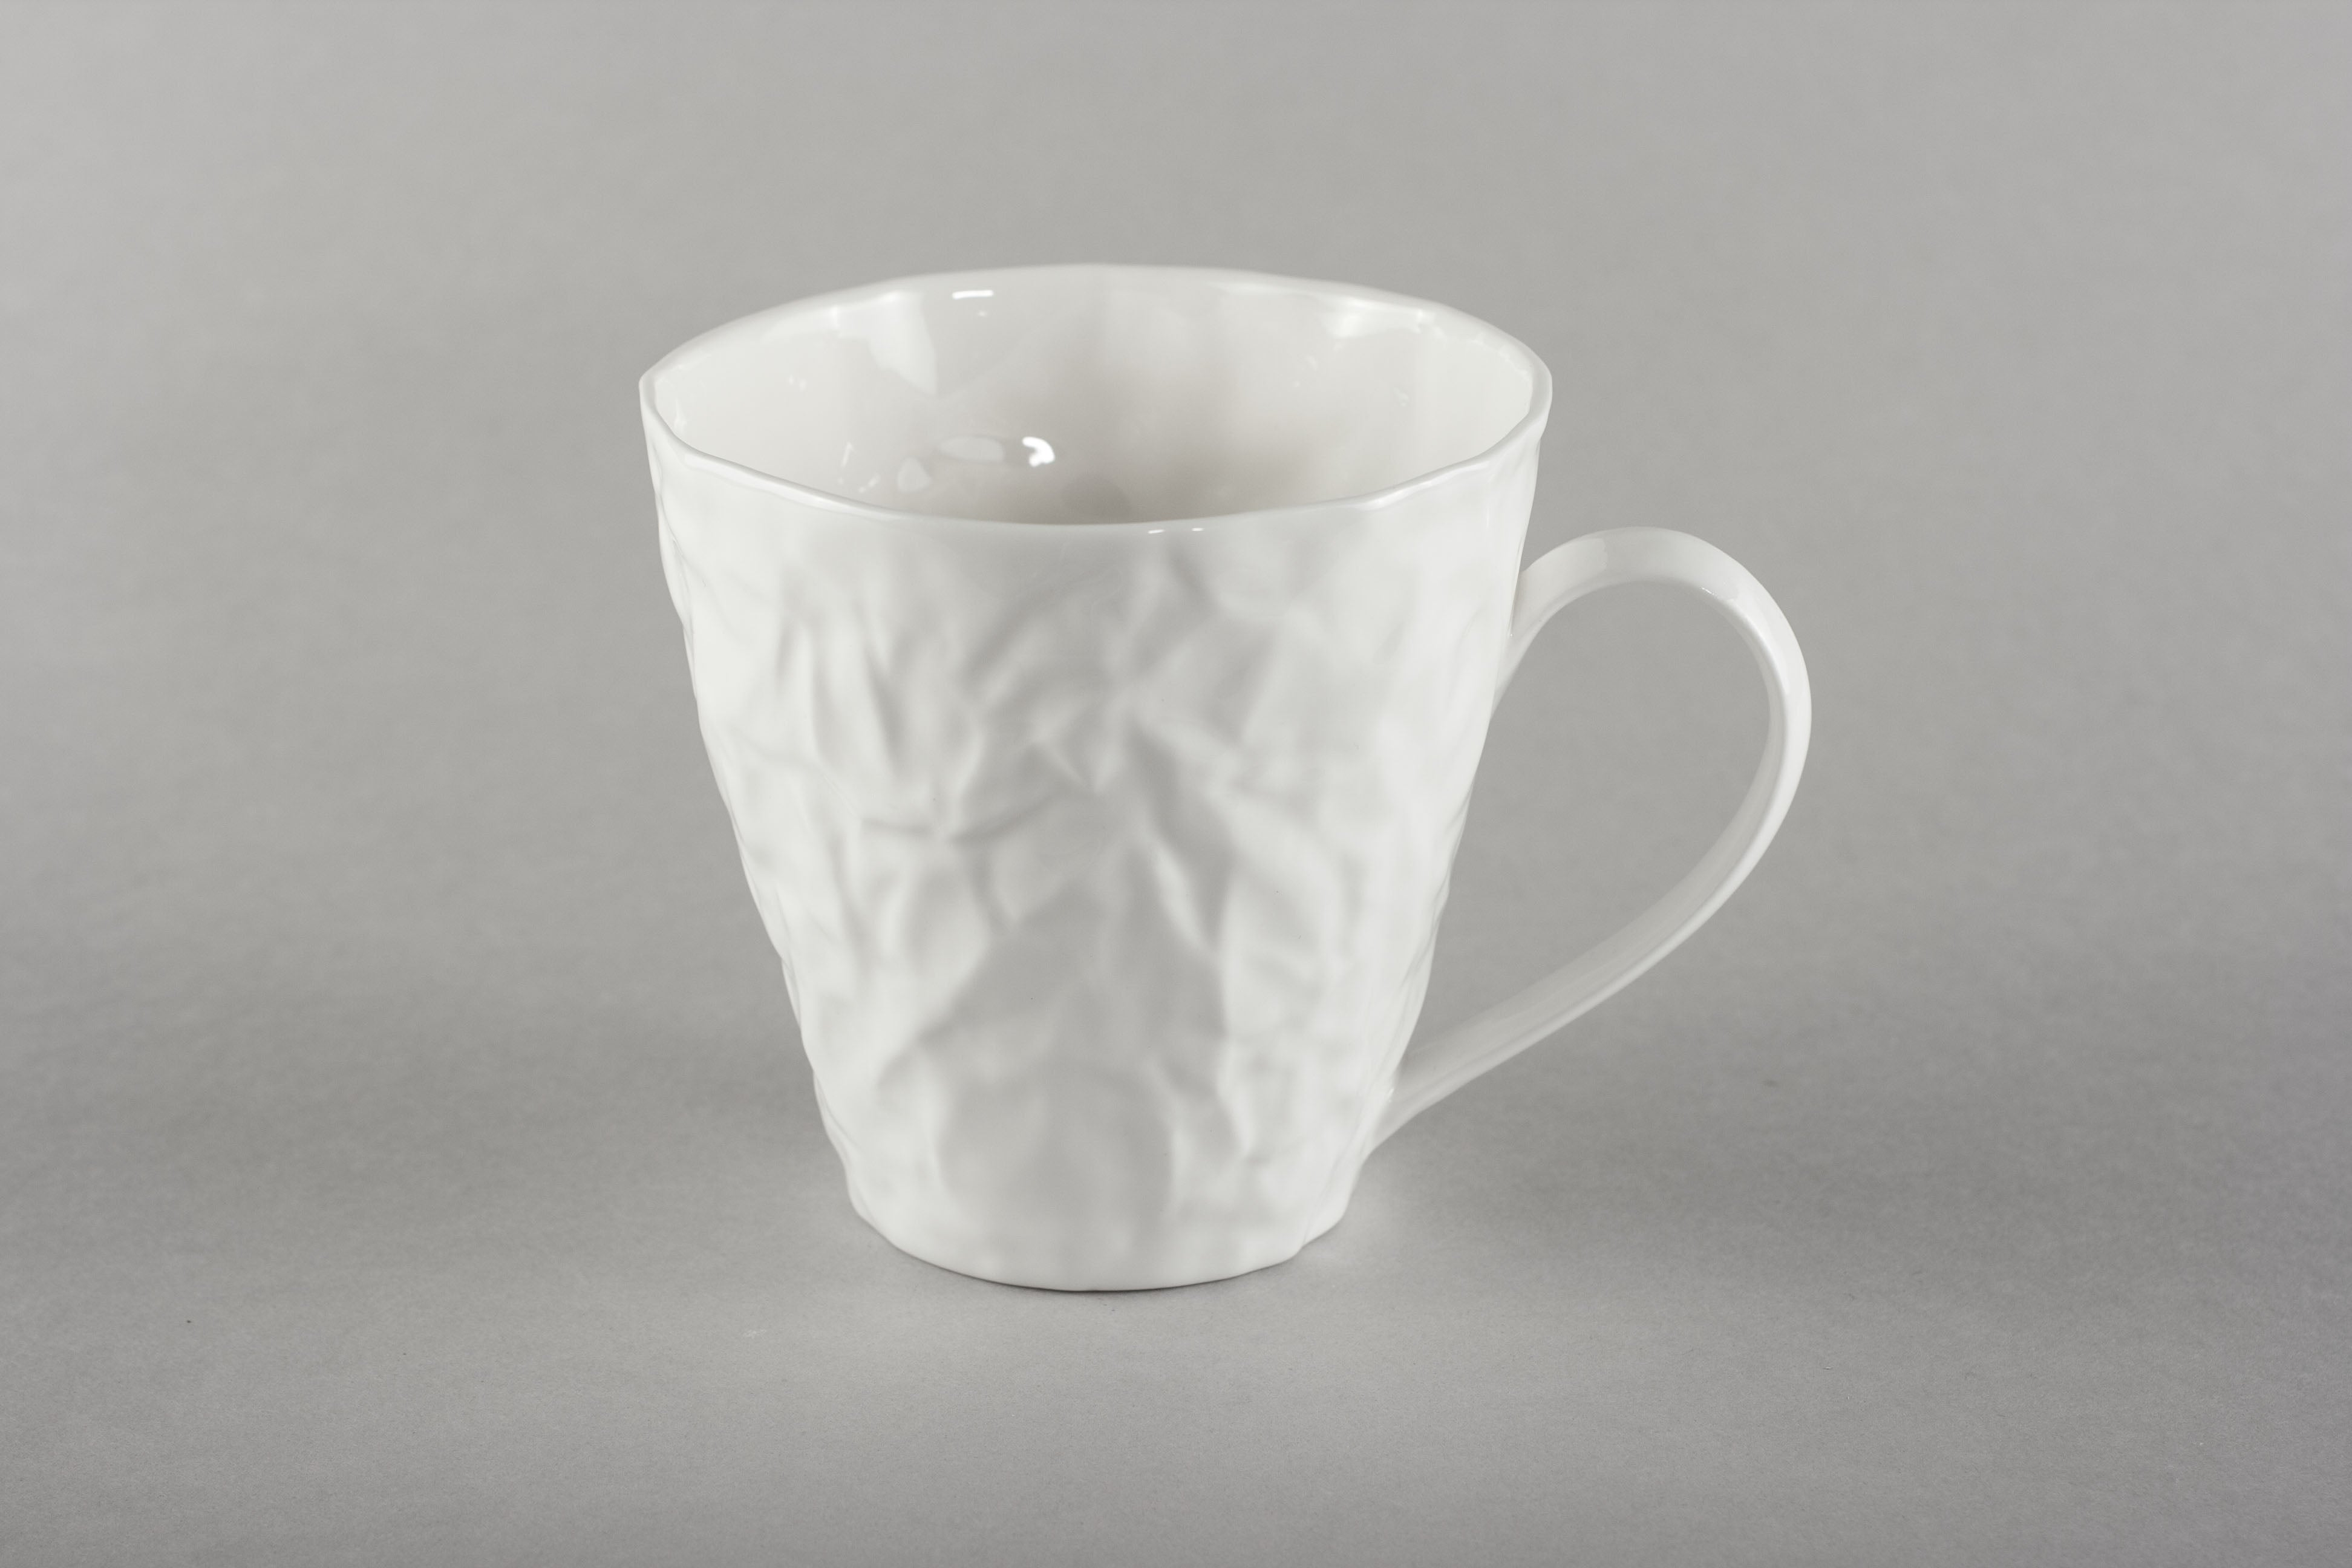 Porcelain Crumpled Tea Co Mug